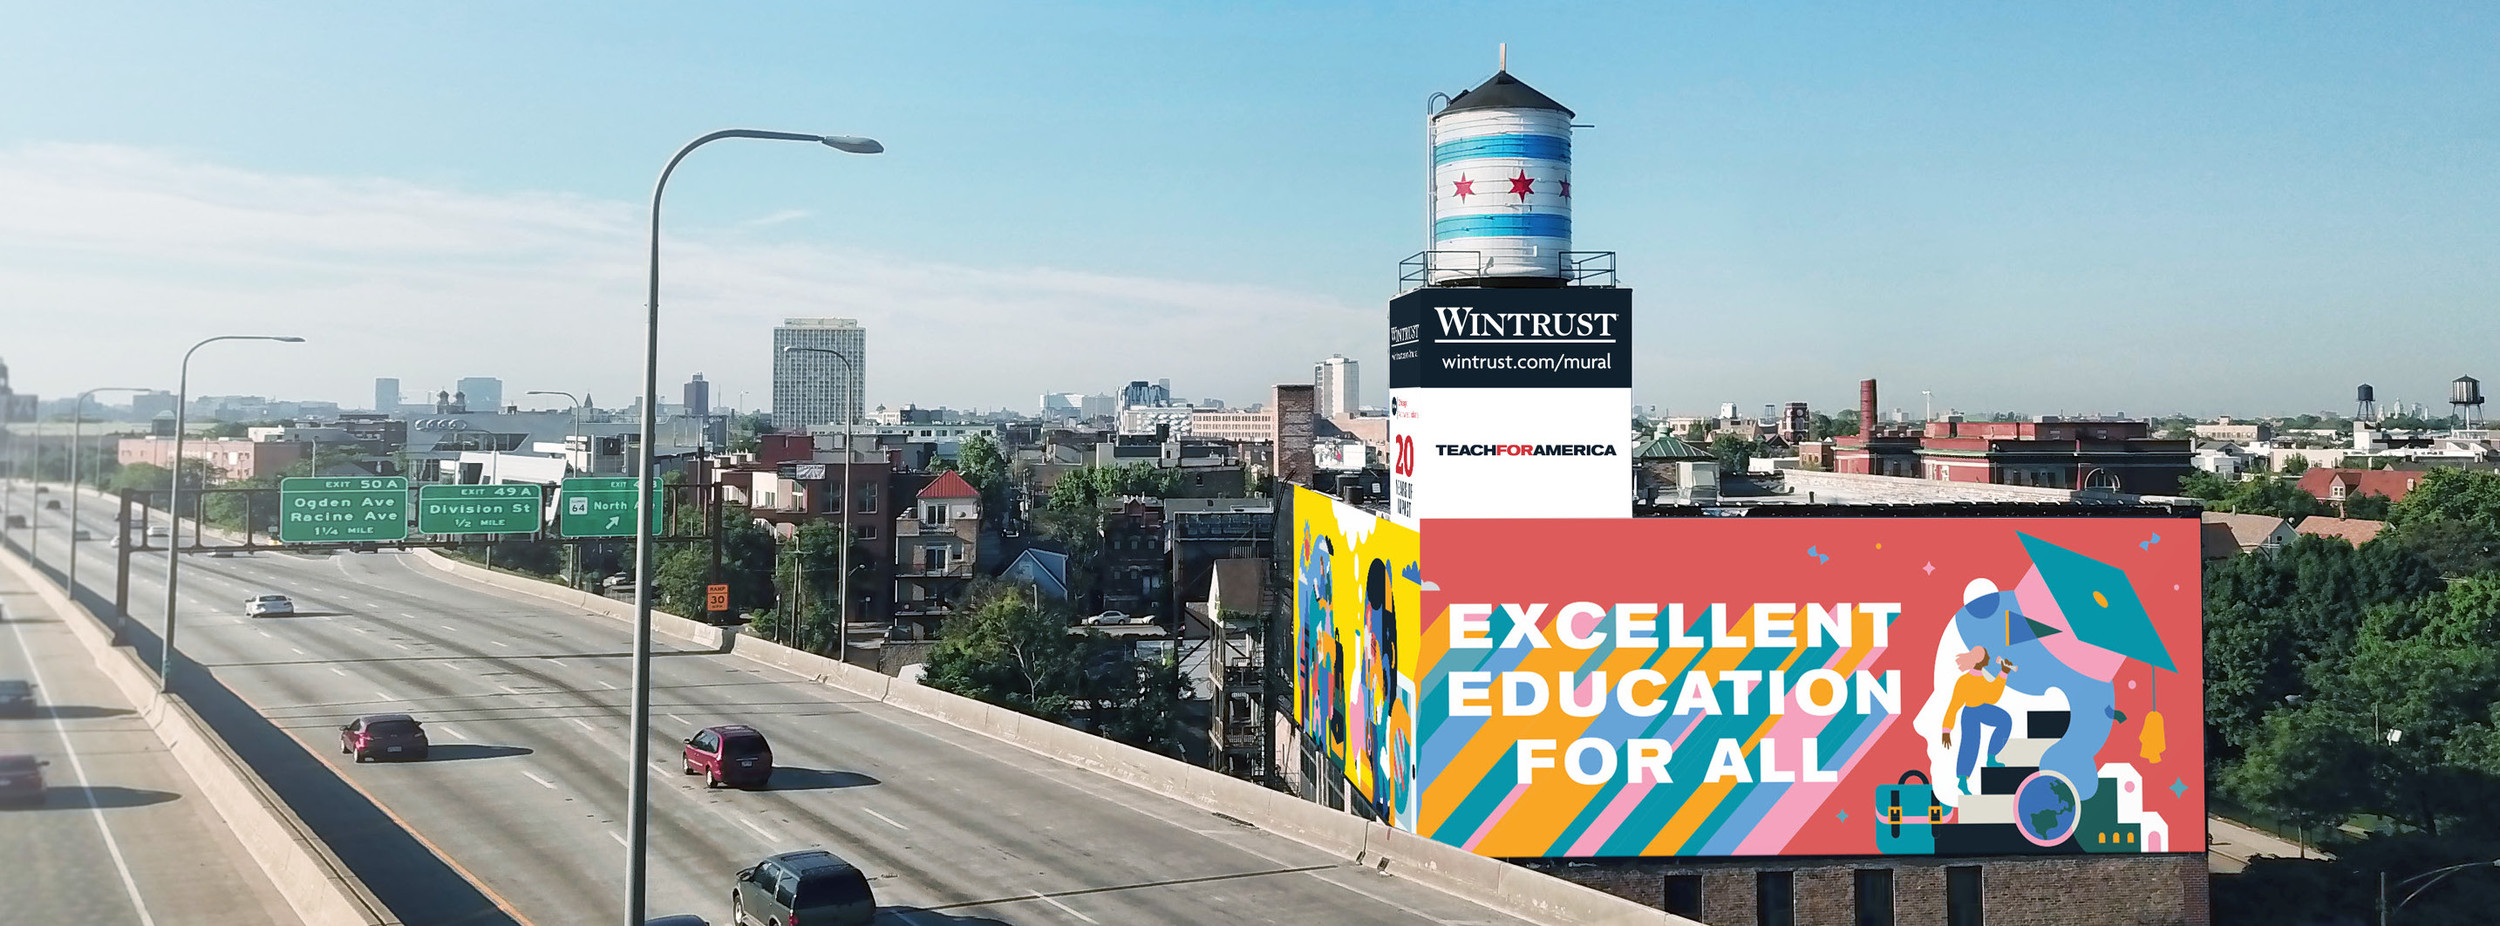 Mural Building: Excellent education for all — Teach For America